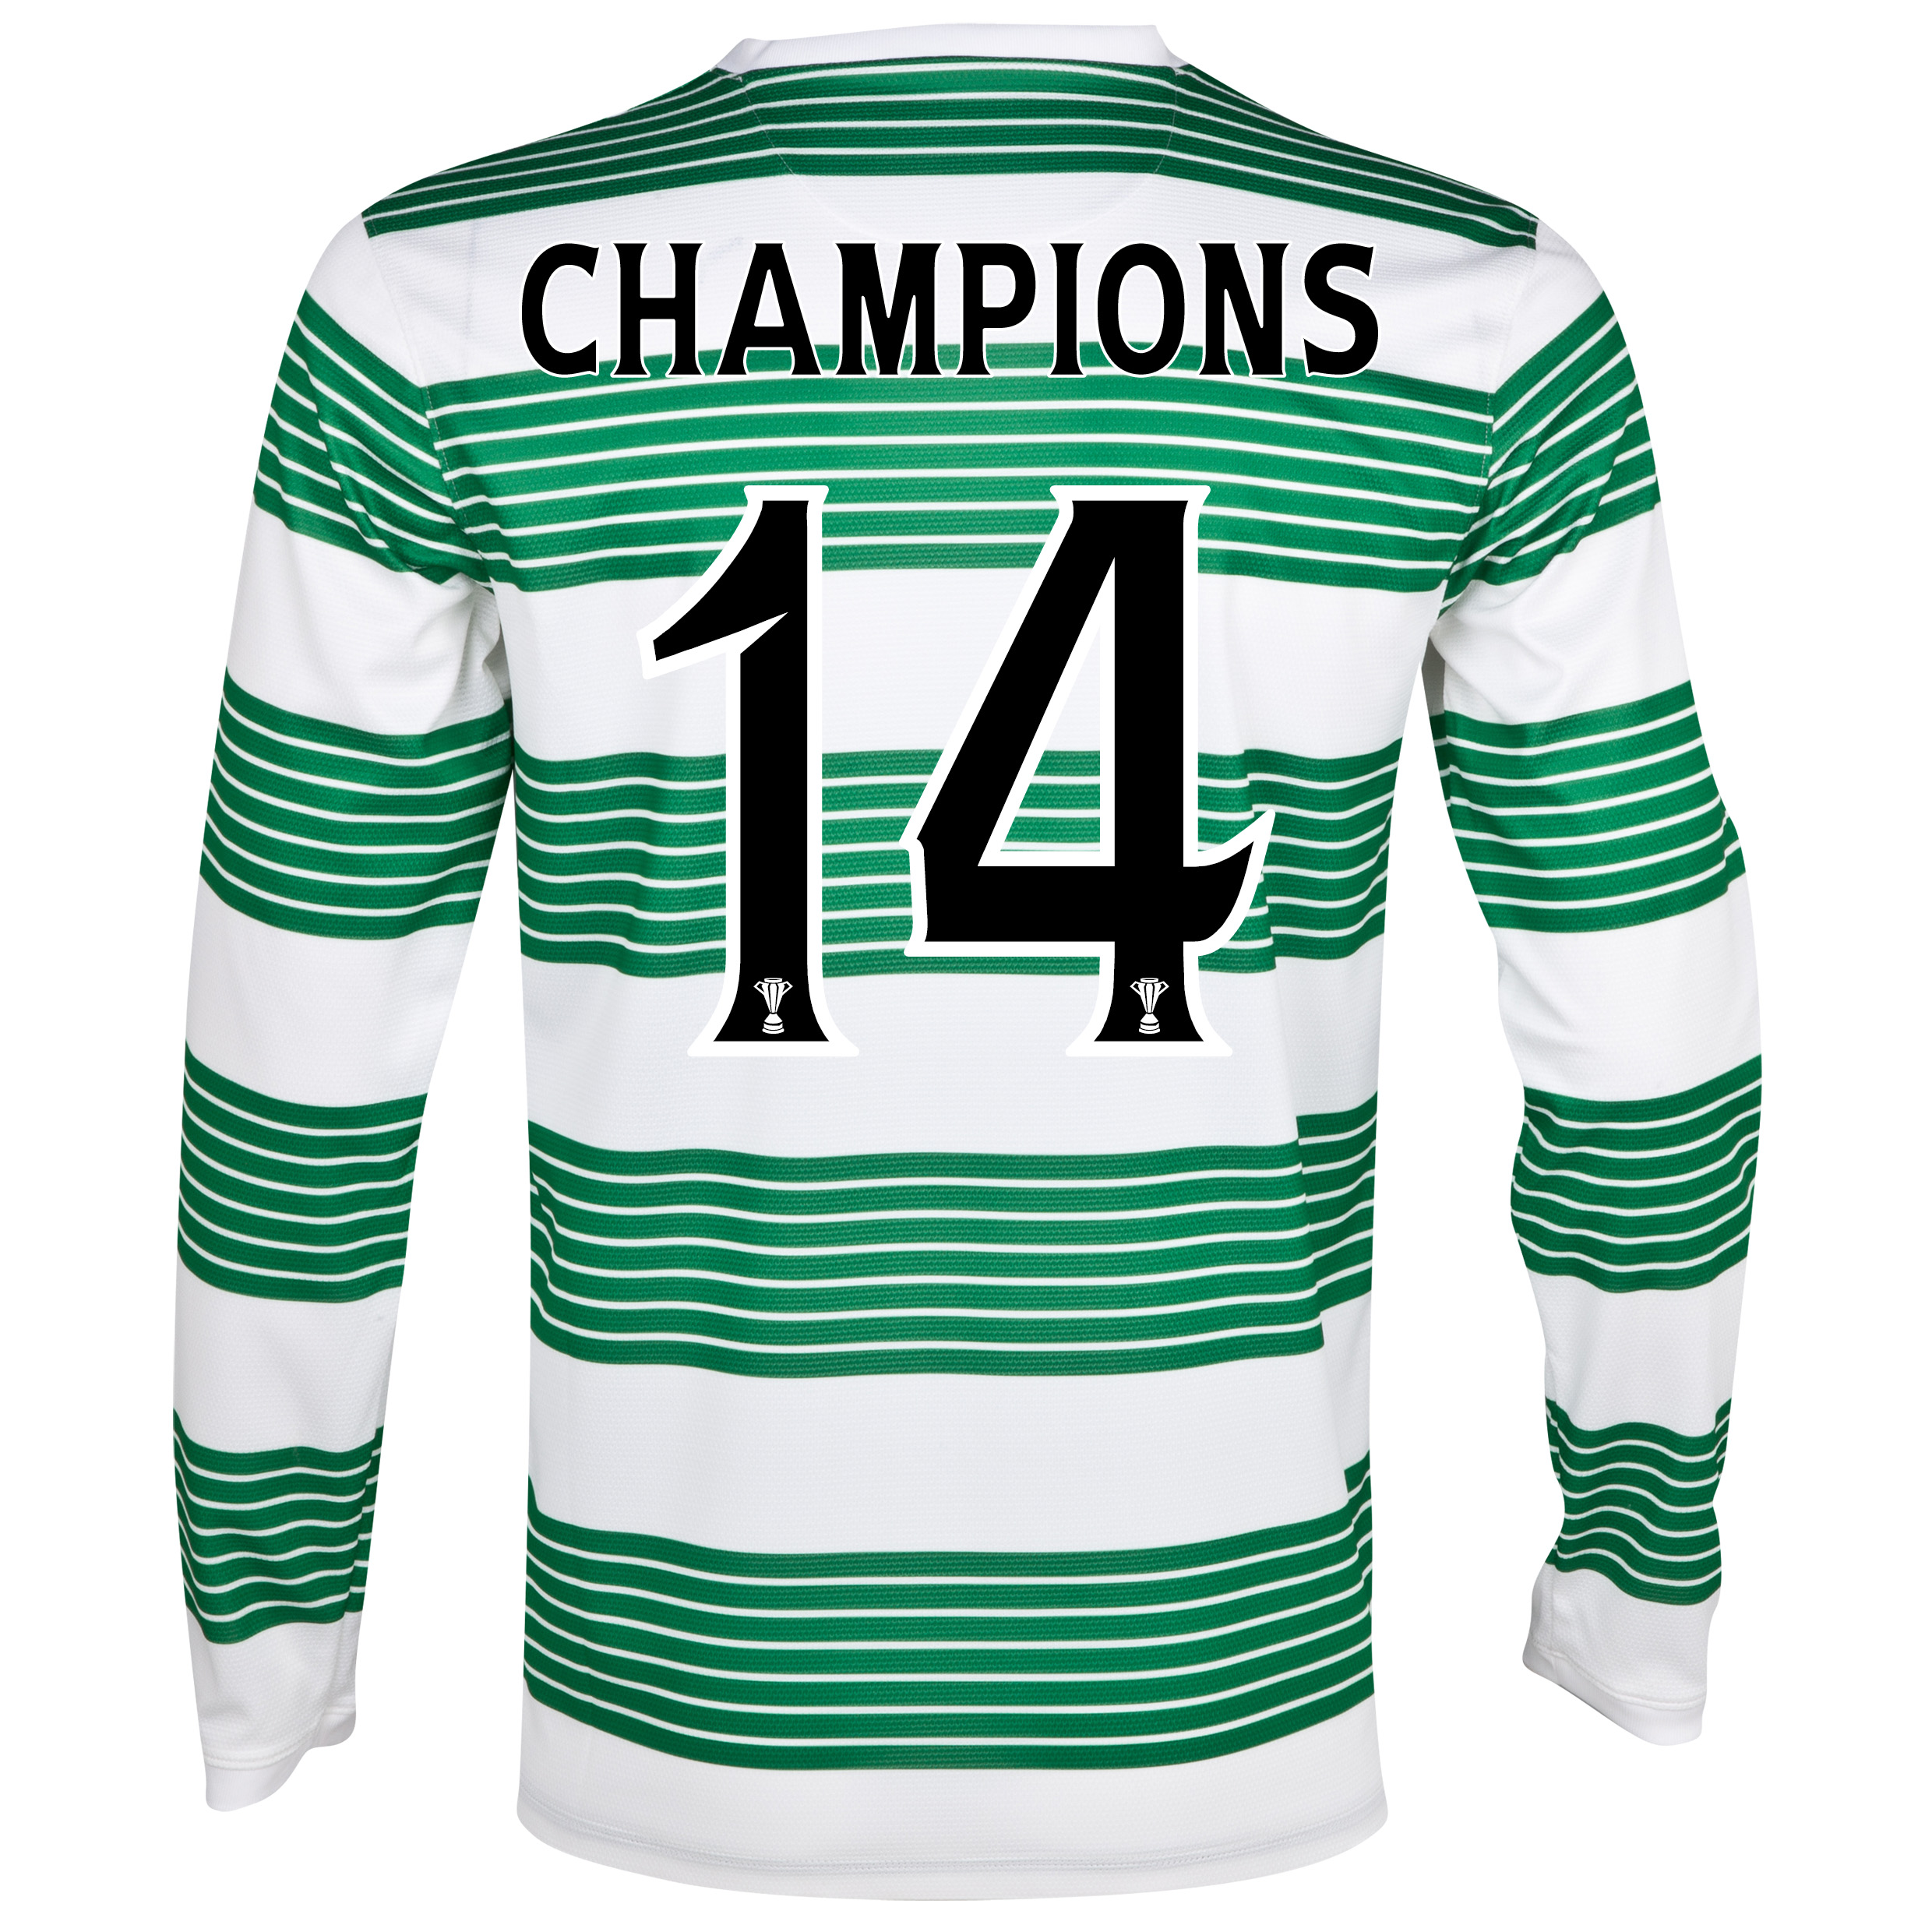 Celtic Home Shirt 2013/15 - Long Sleeved - Kids with Champions 14 printing